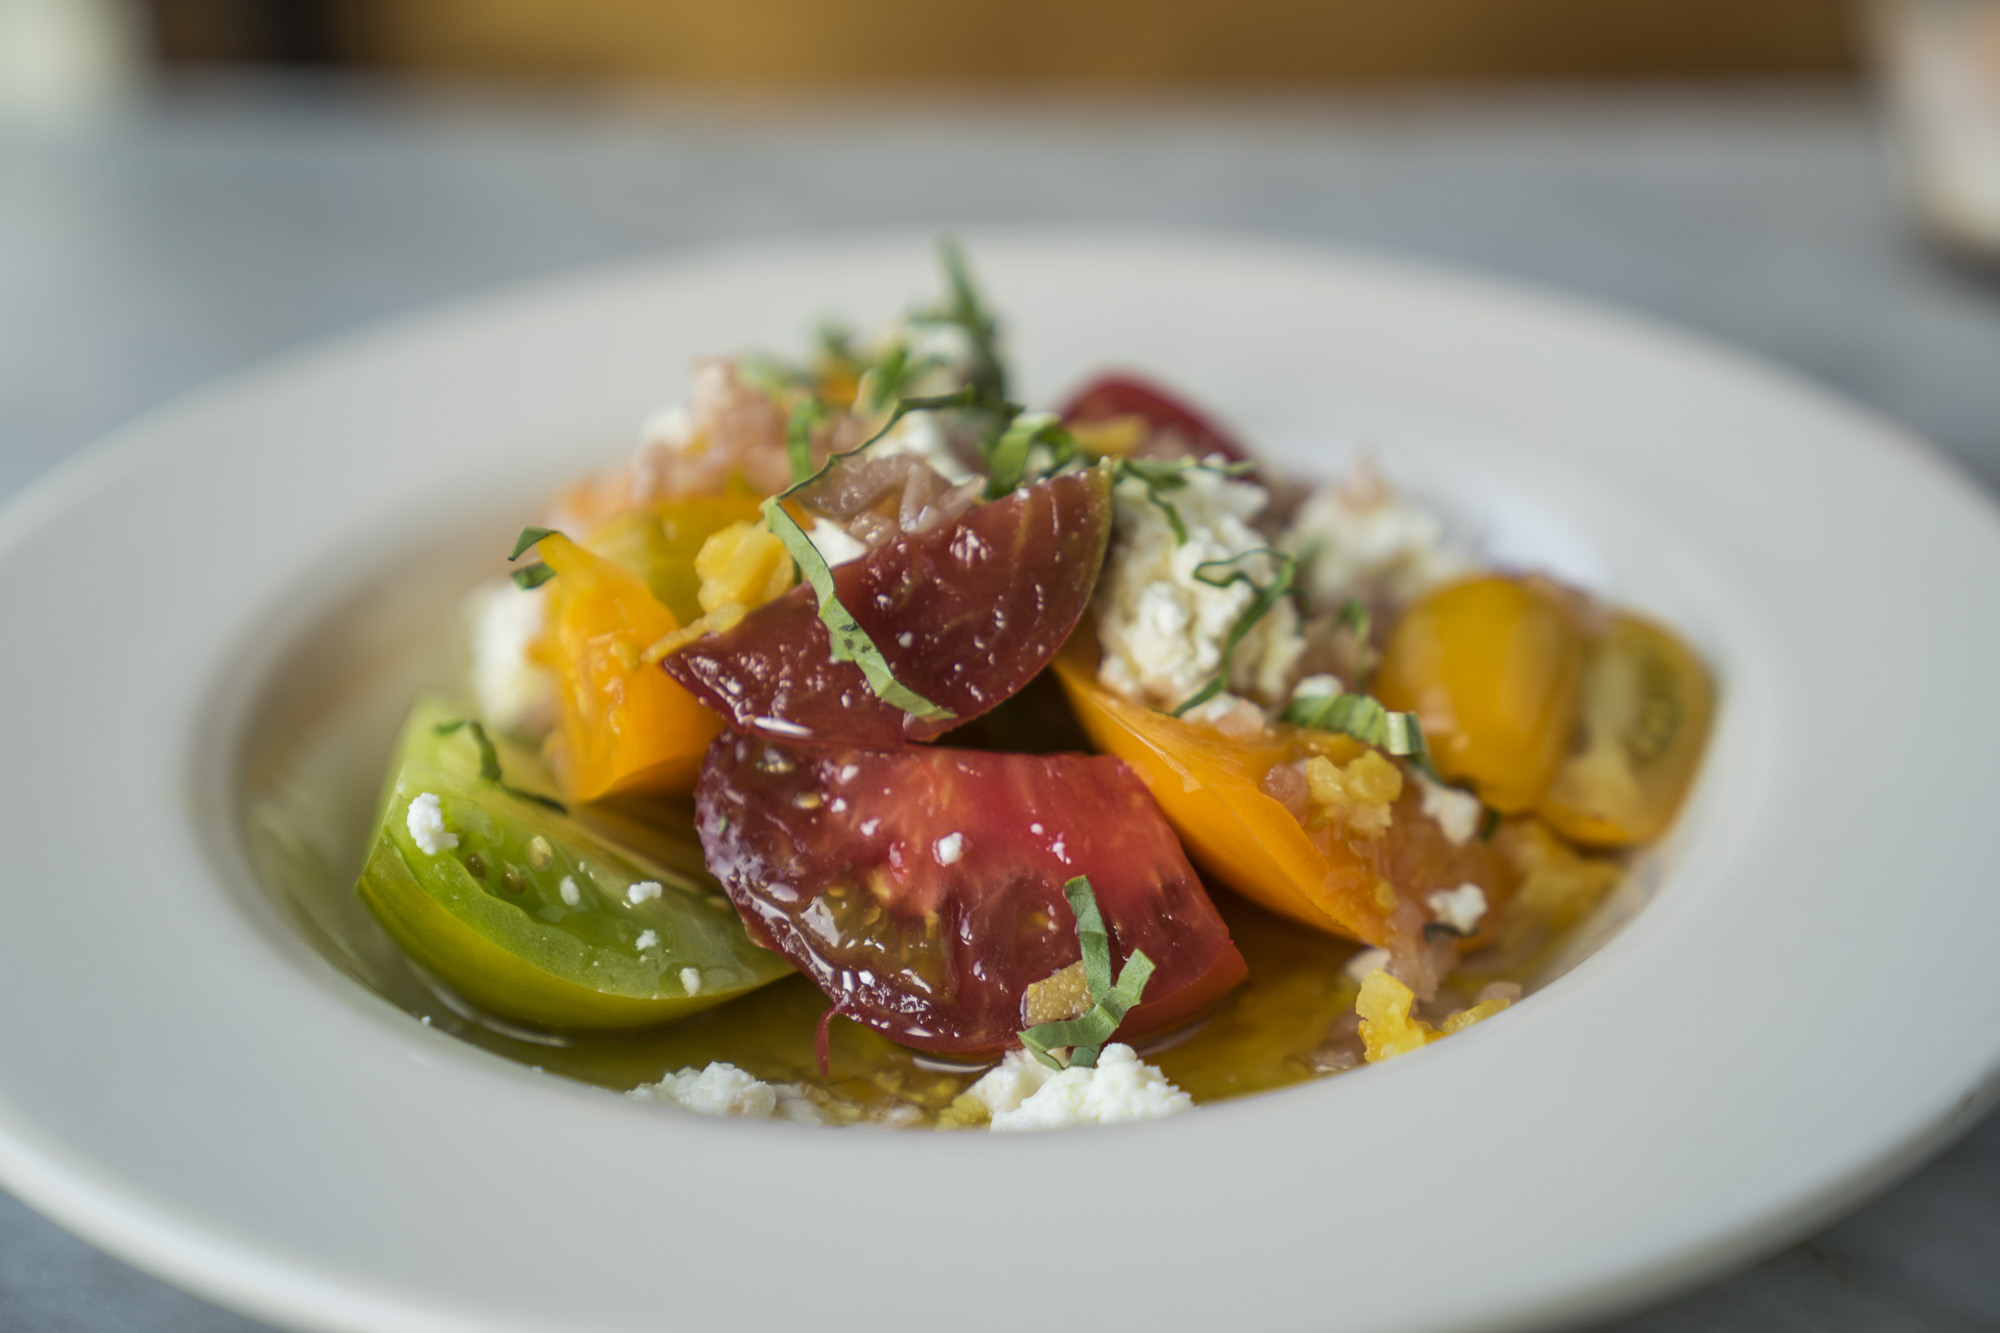 The tomato salad at Essex in Seattle.